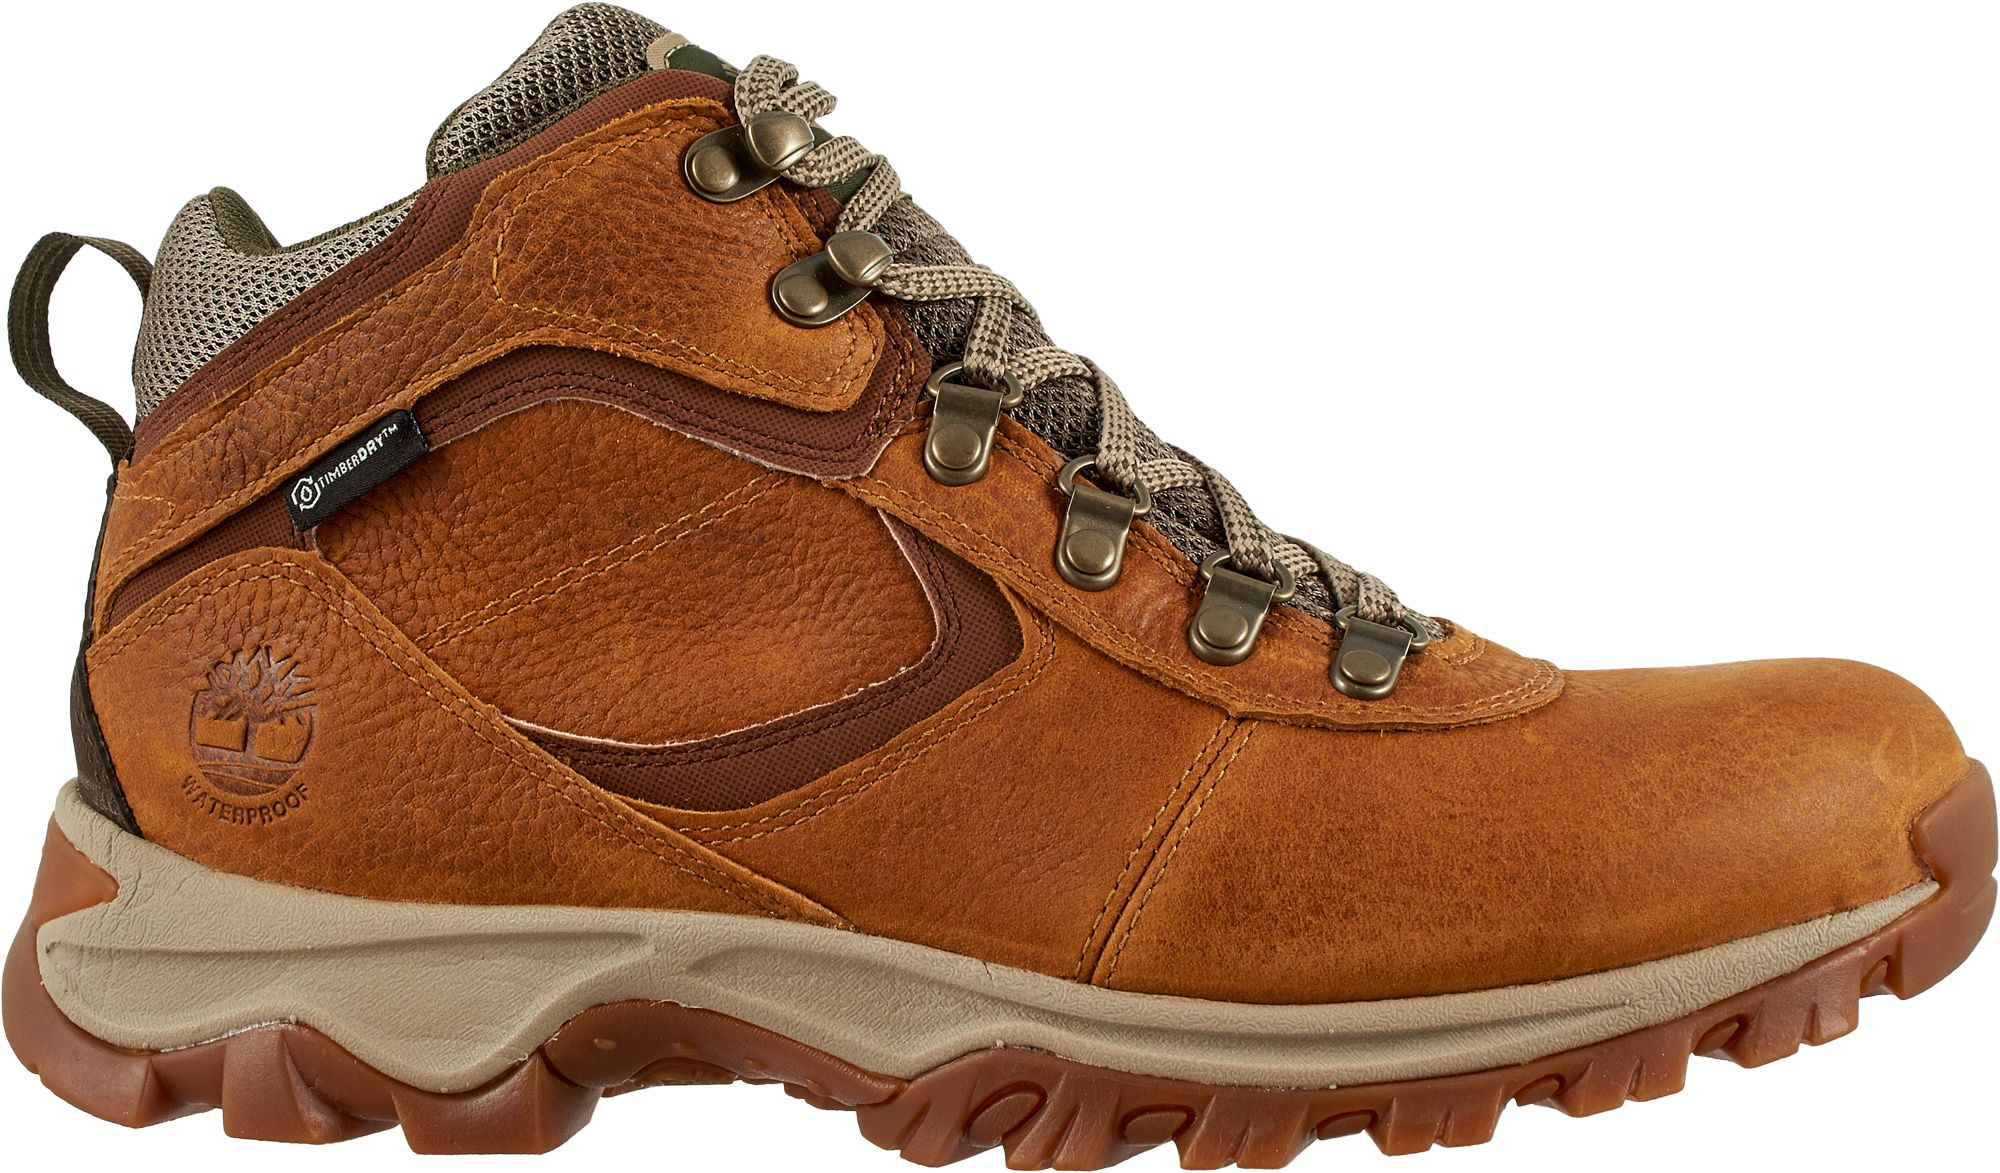 d3be4969d778 Jcpenney Nike Shoes For Mens Nike Zoom Lebron Soldier Vlll Shoes ...